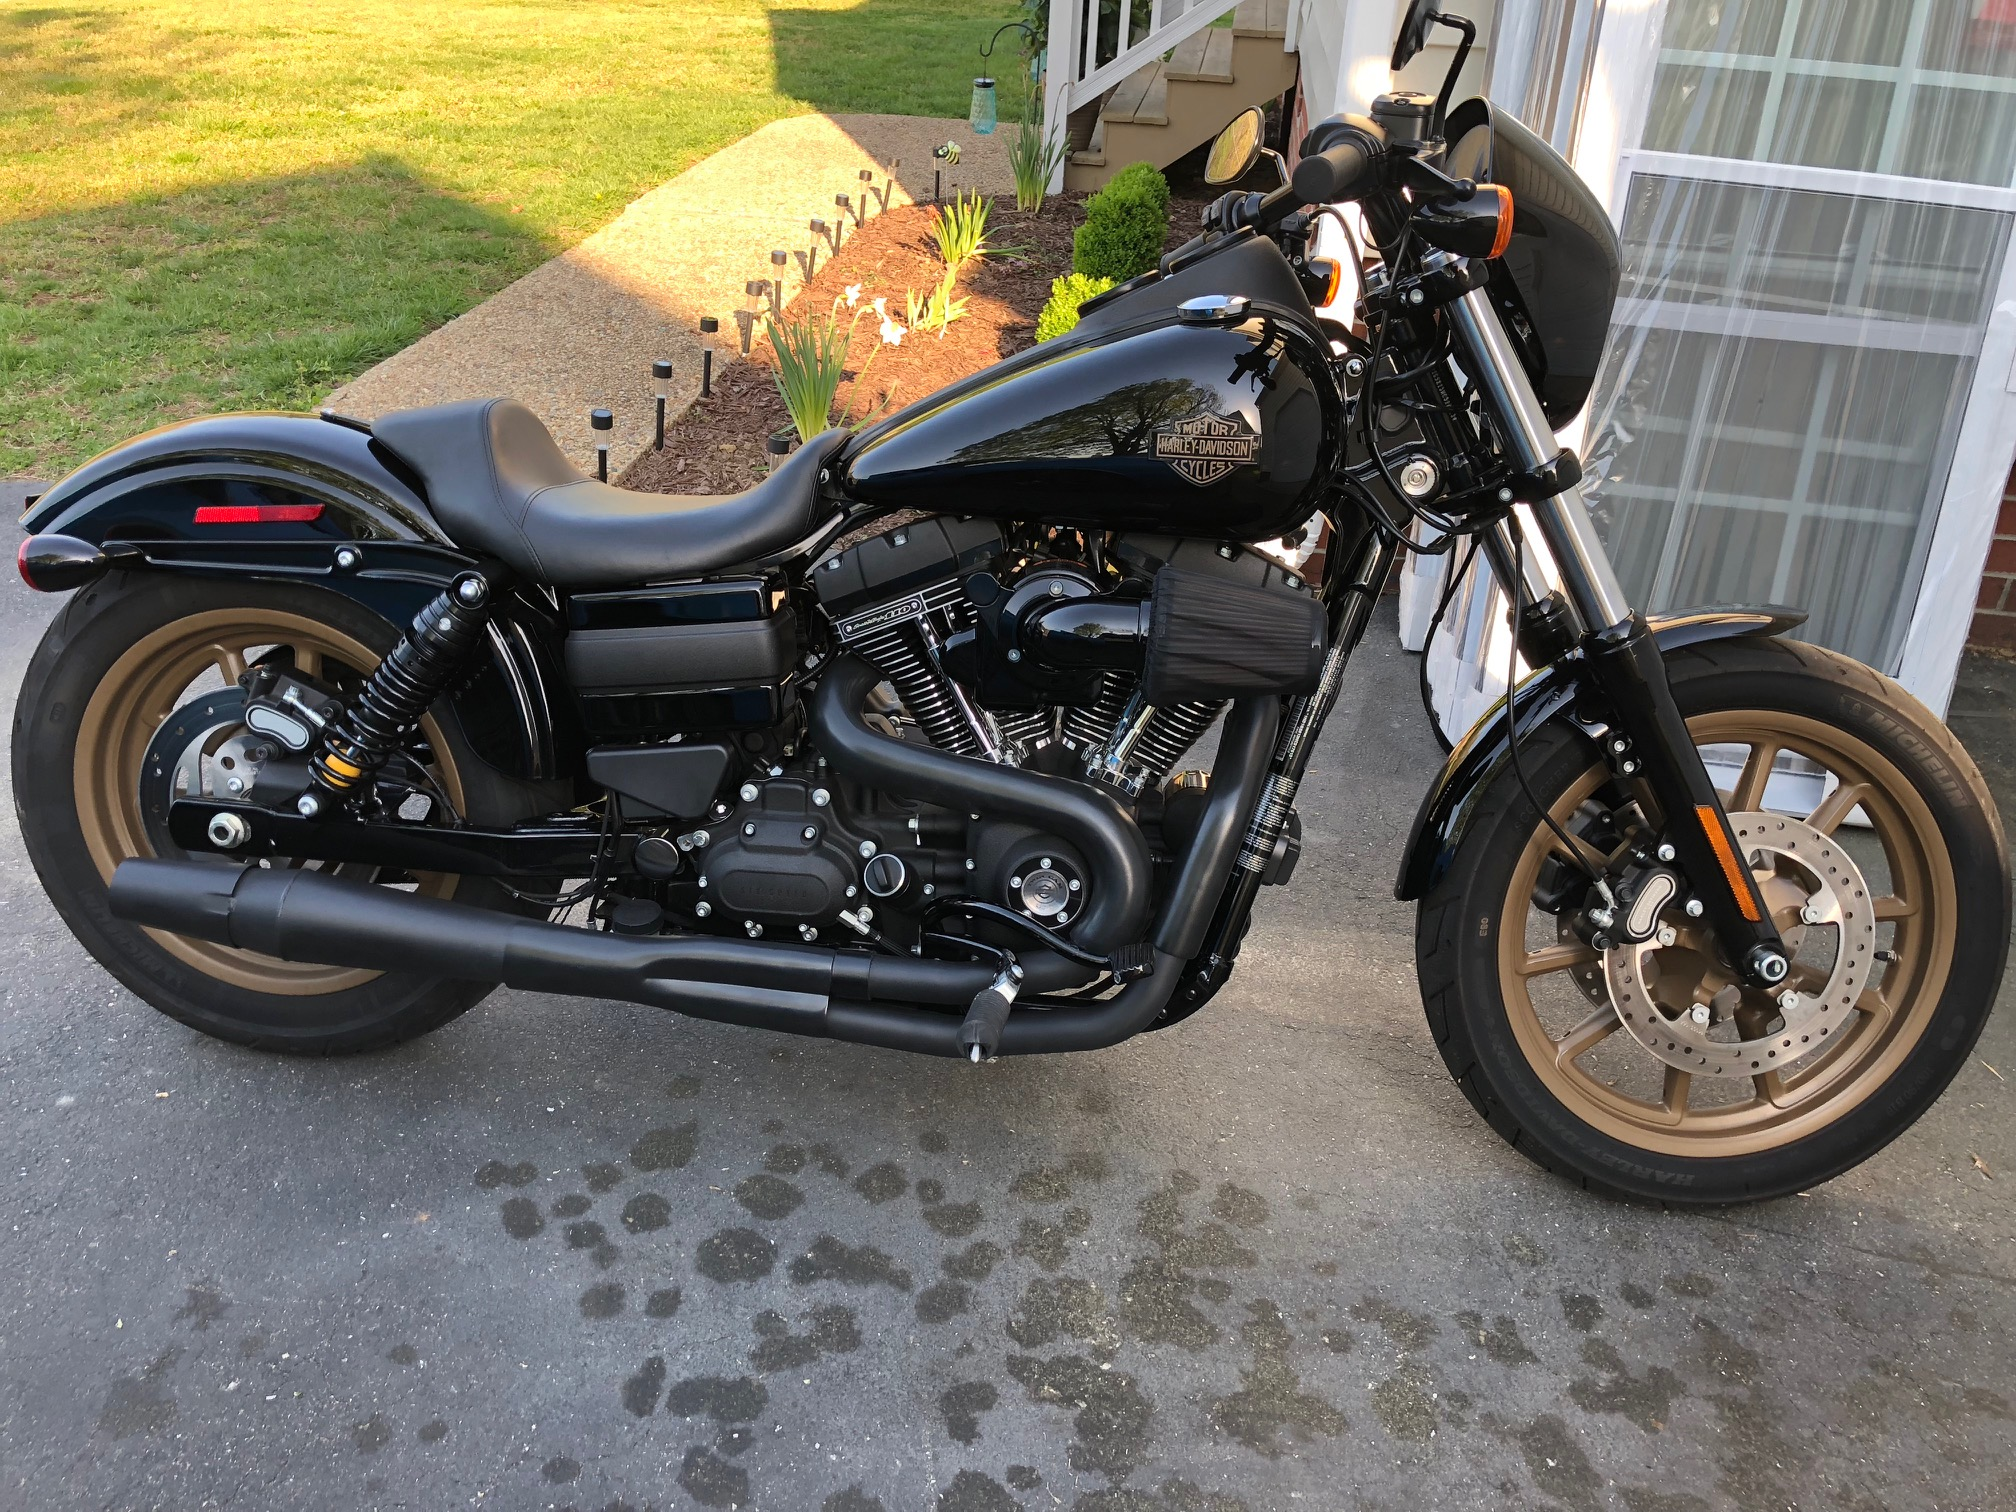 Dyna Low Rider S 110